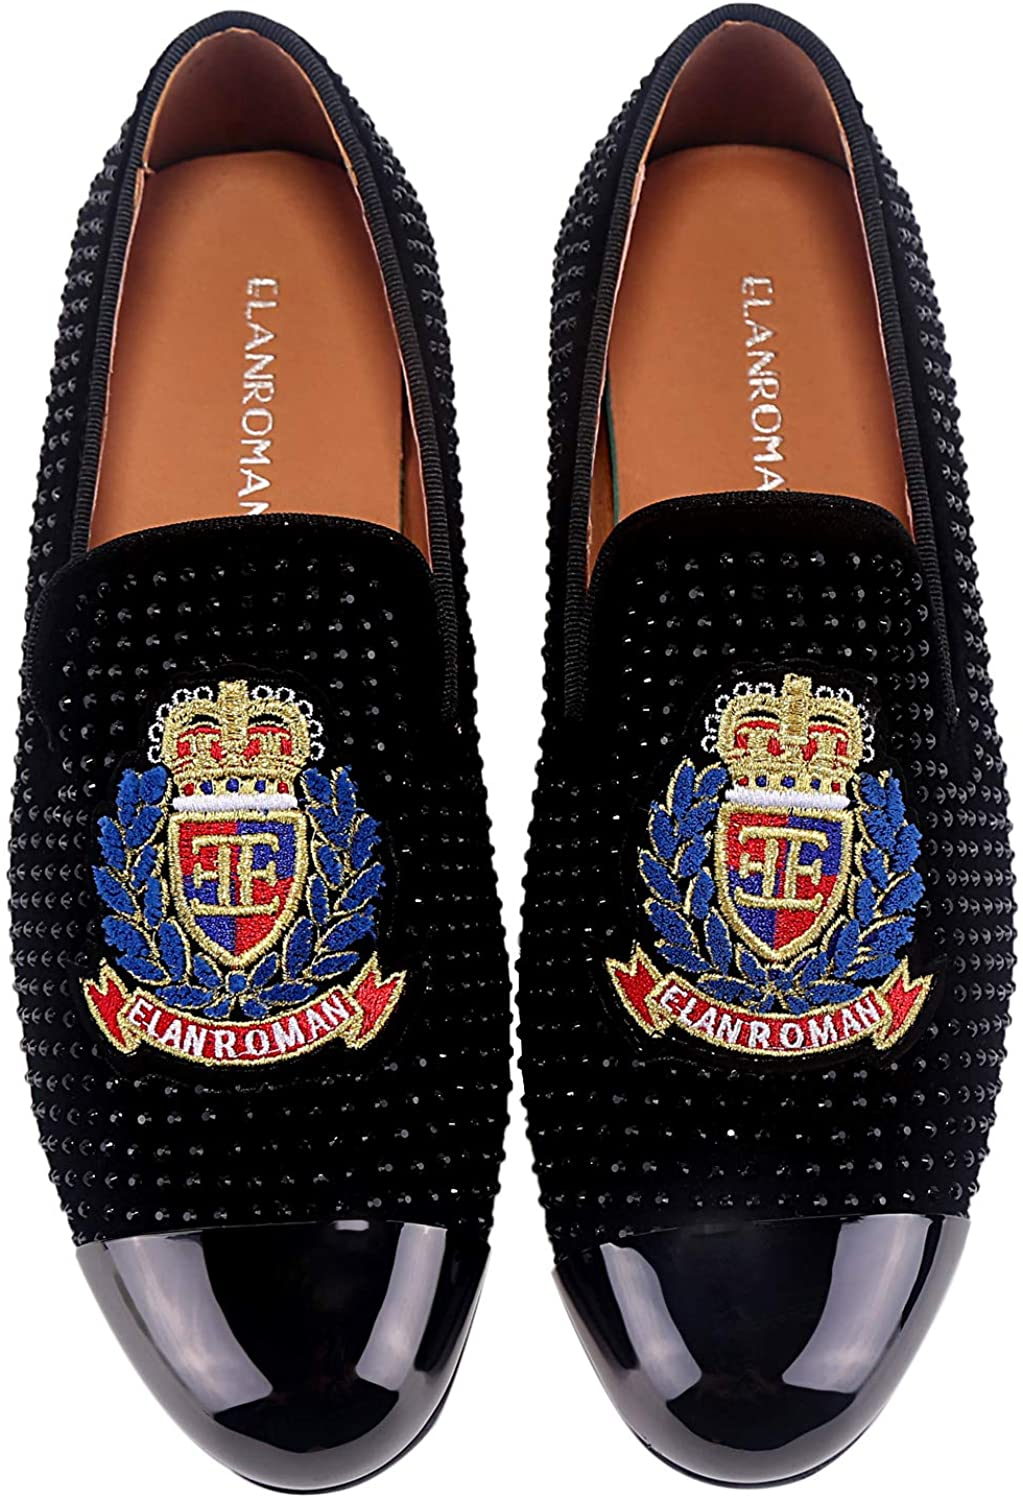 ELANROMAN Mens Dress Loafers Leather Wedding Shoes